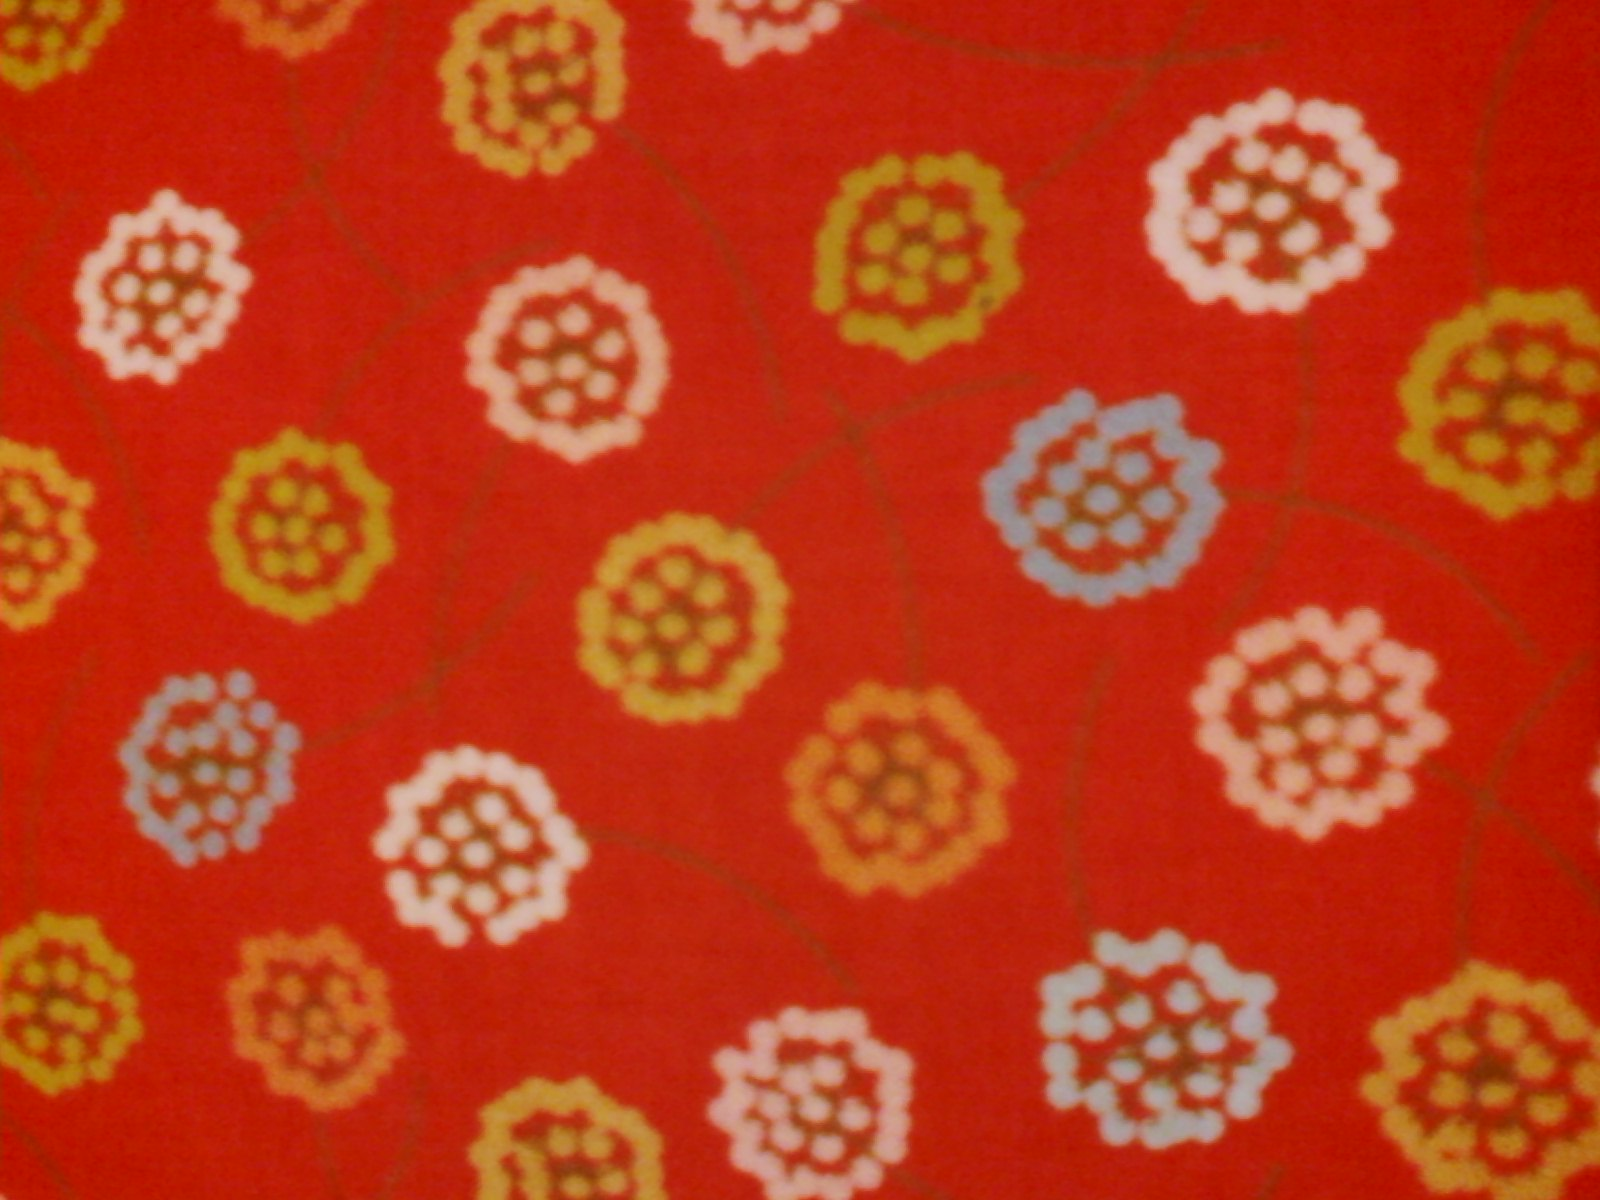 Wrens Friends Orange with Flowers-wrens friends gina martin moda orange tangerine flowers